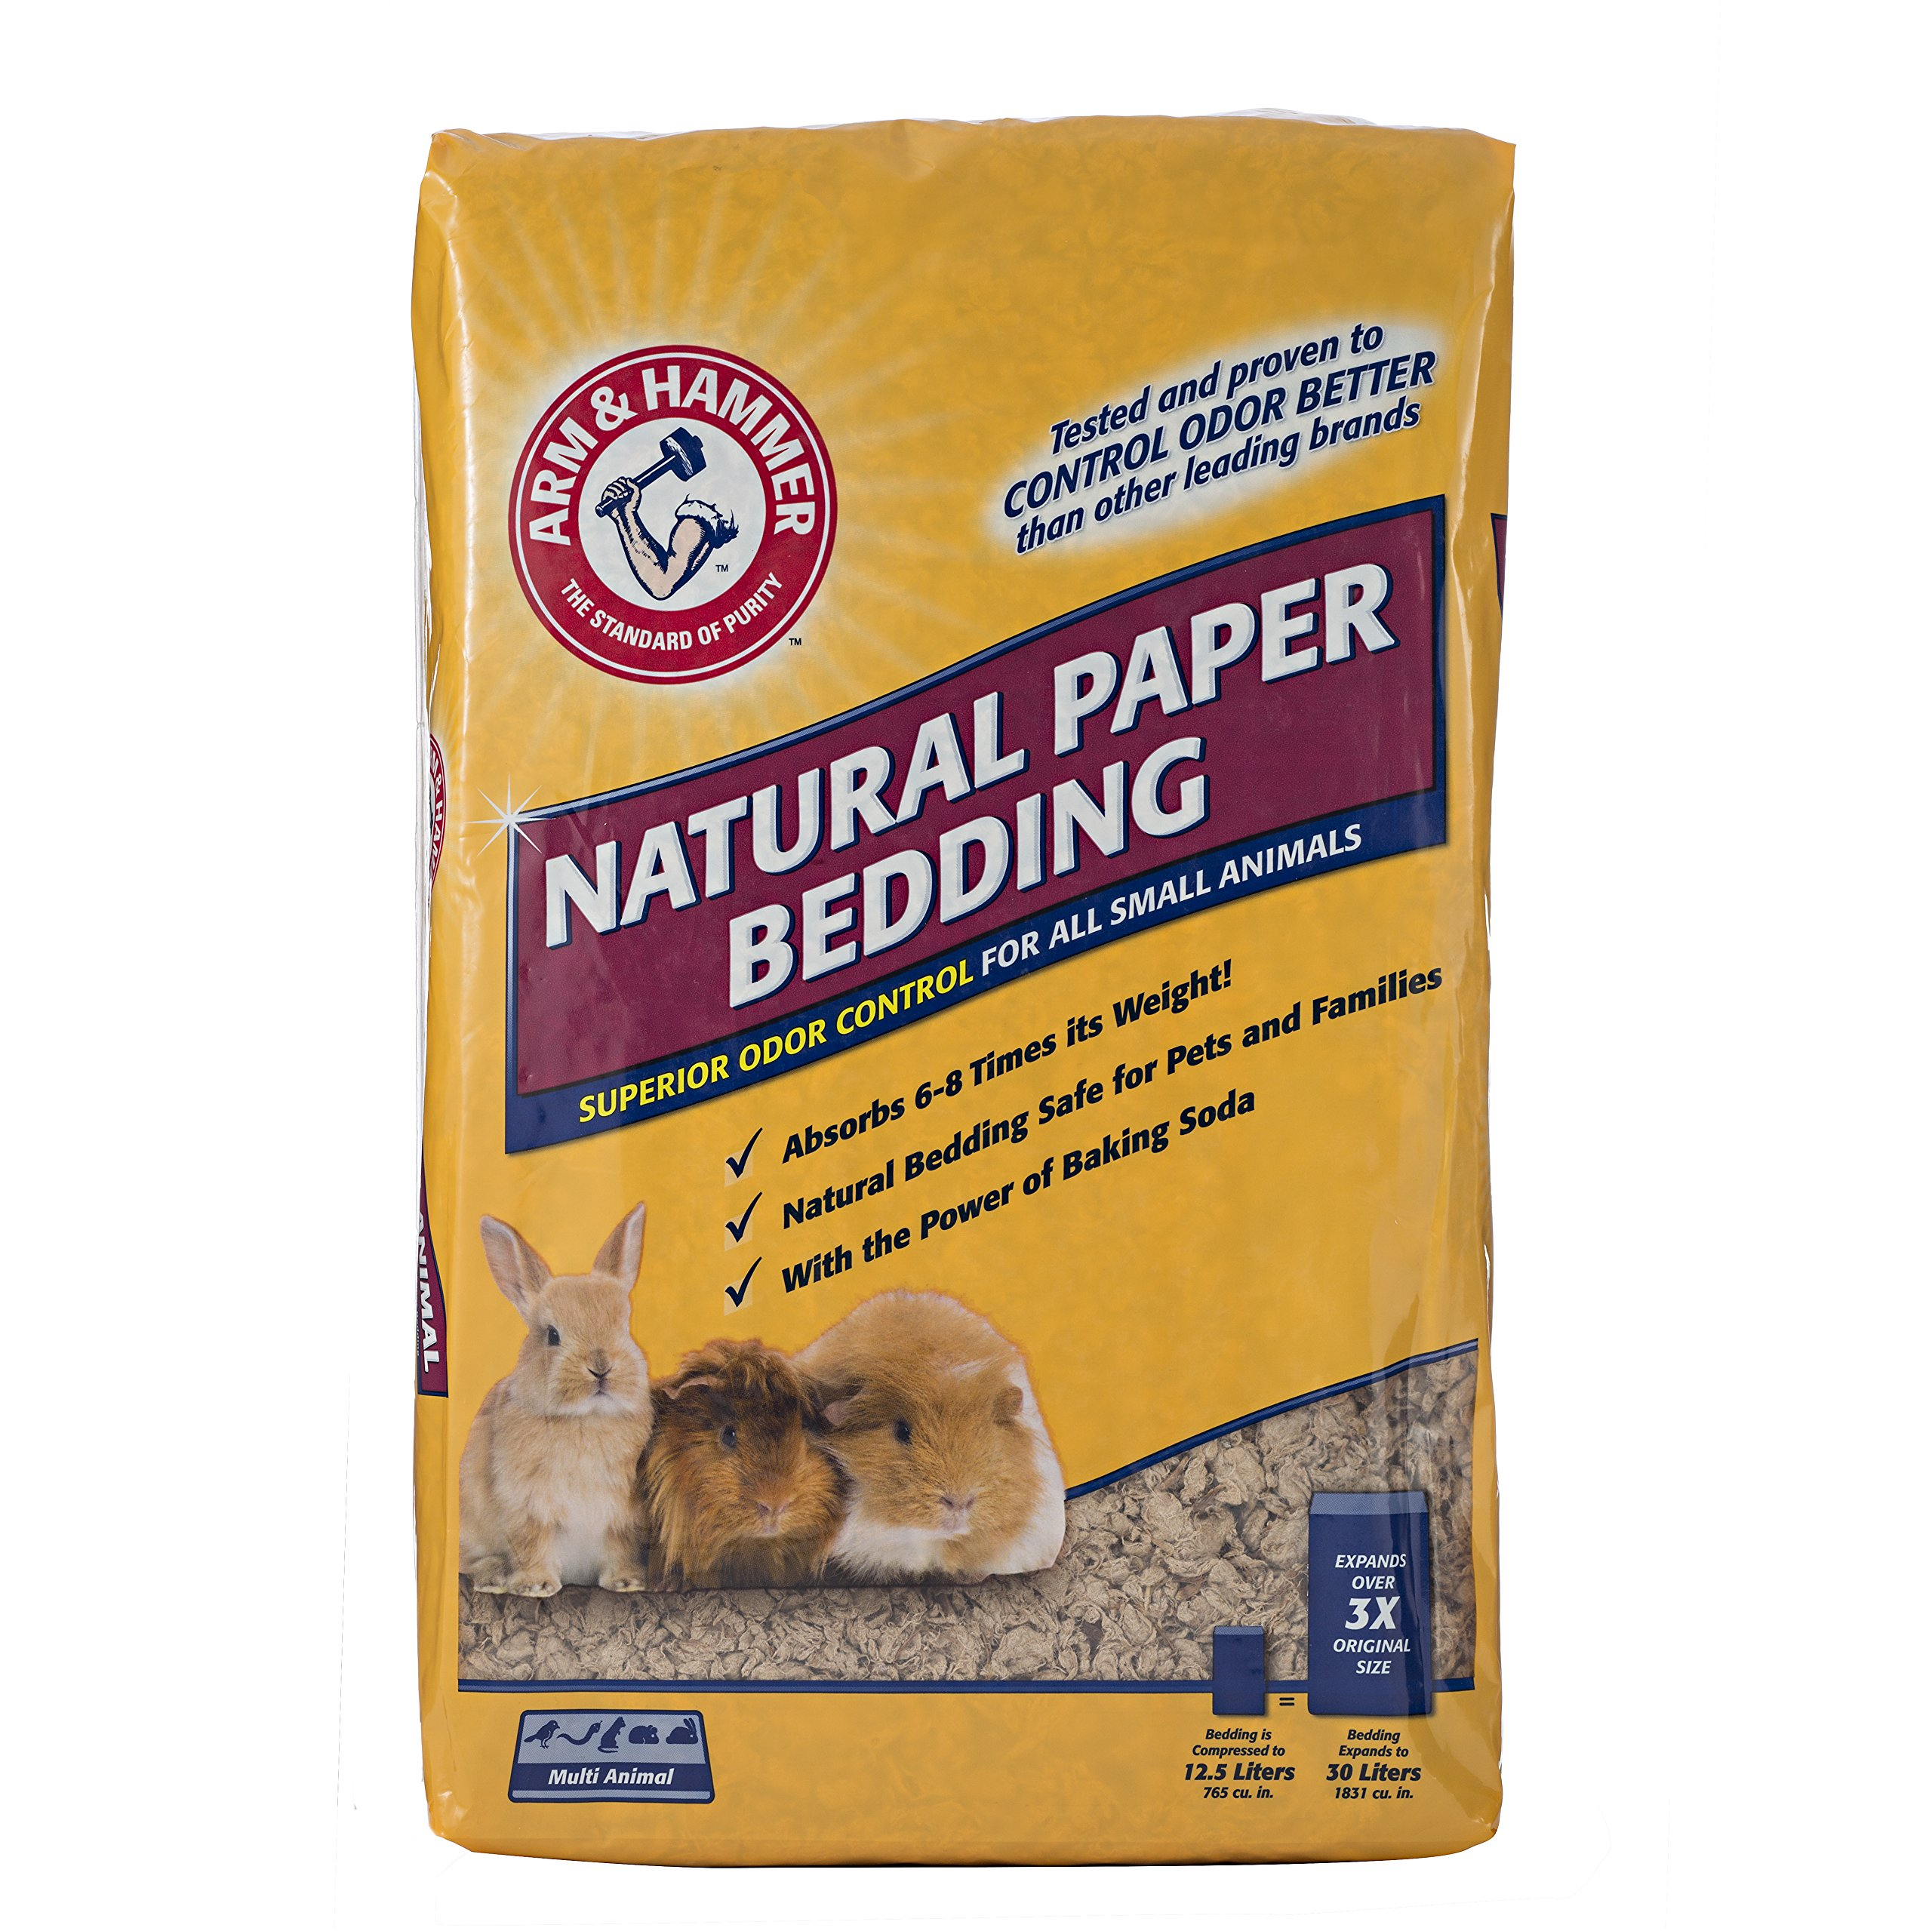 Arm & Hammer Natural Paper Bedding for Small Animal Cages   Absorbs Urine & Eliminates Odor with the Power of Baking Soda   for Guinea Pigs, Hamsters, Rabbits & All Small Animals